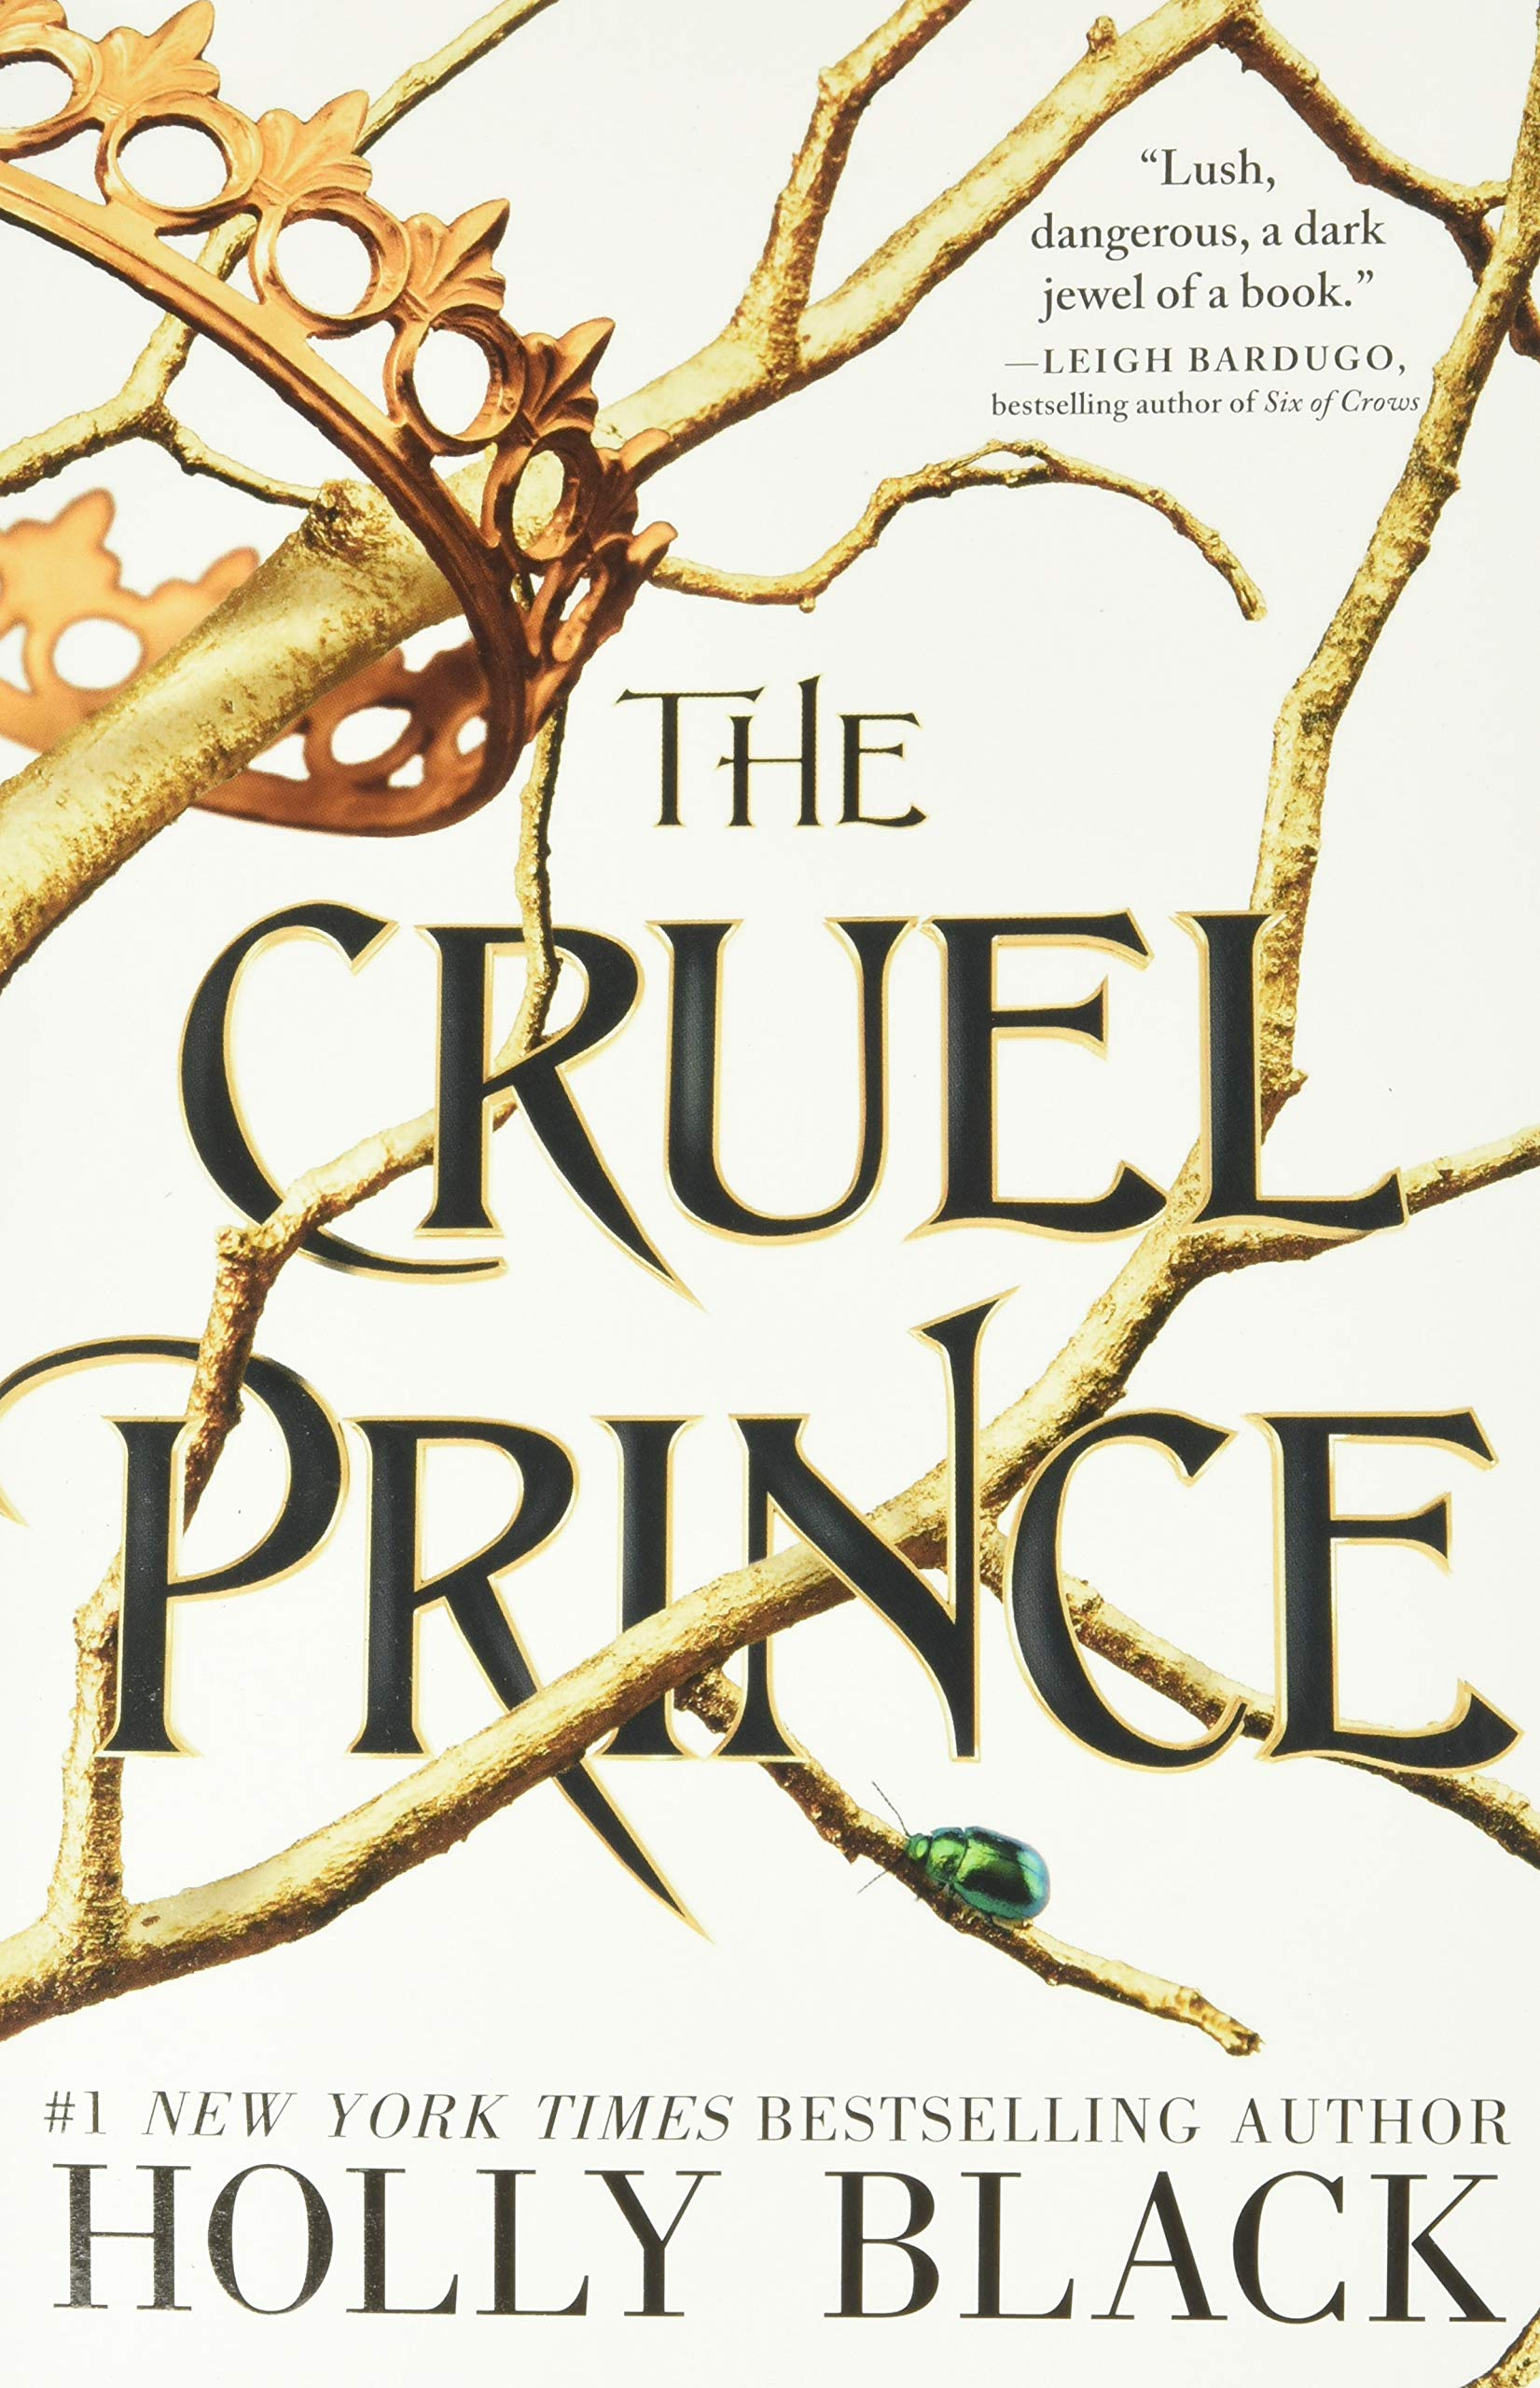 The Cruel Prince: Amazon.ca: Black, Holly: Books